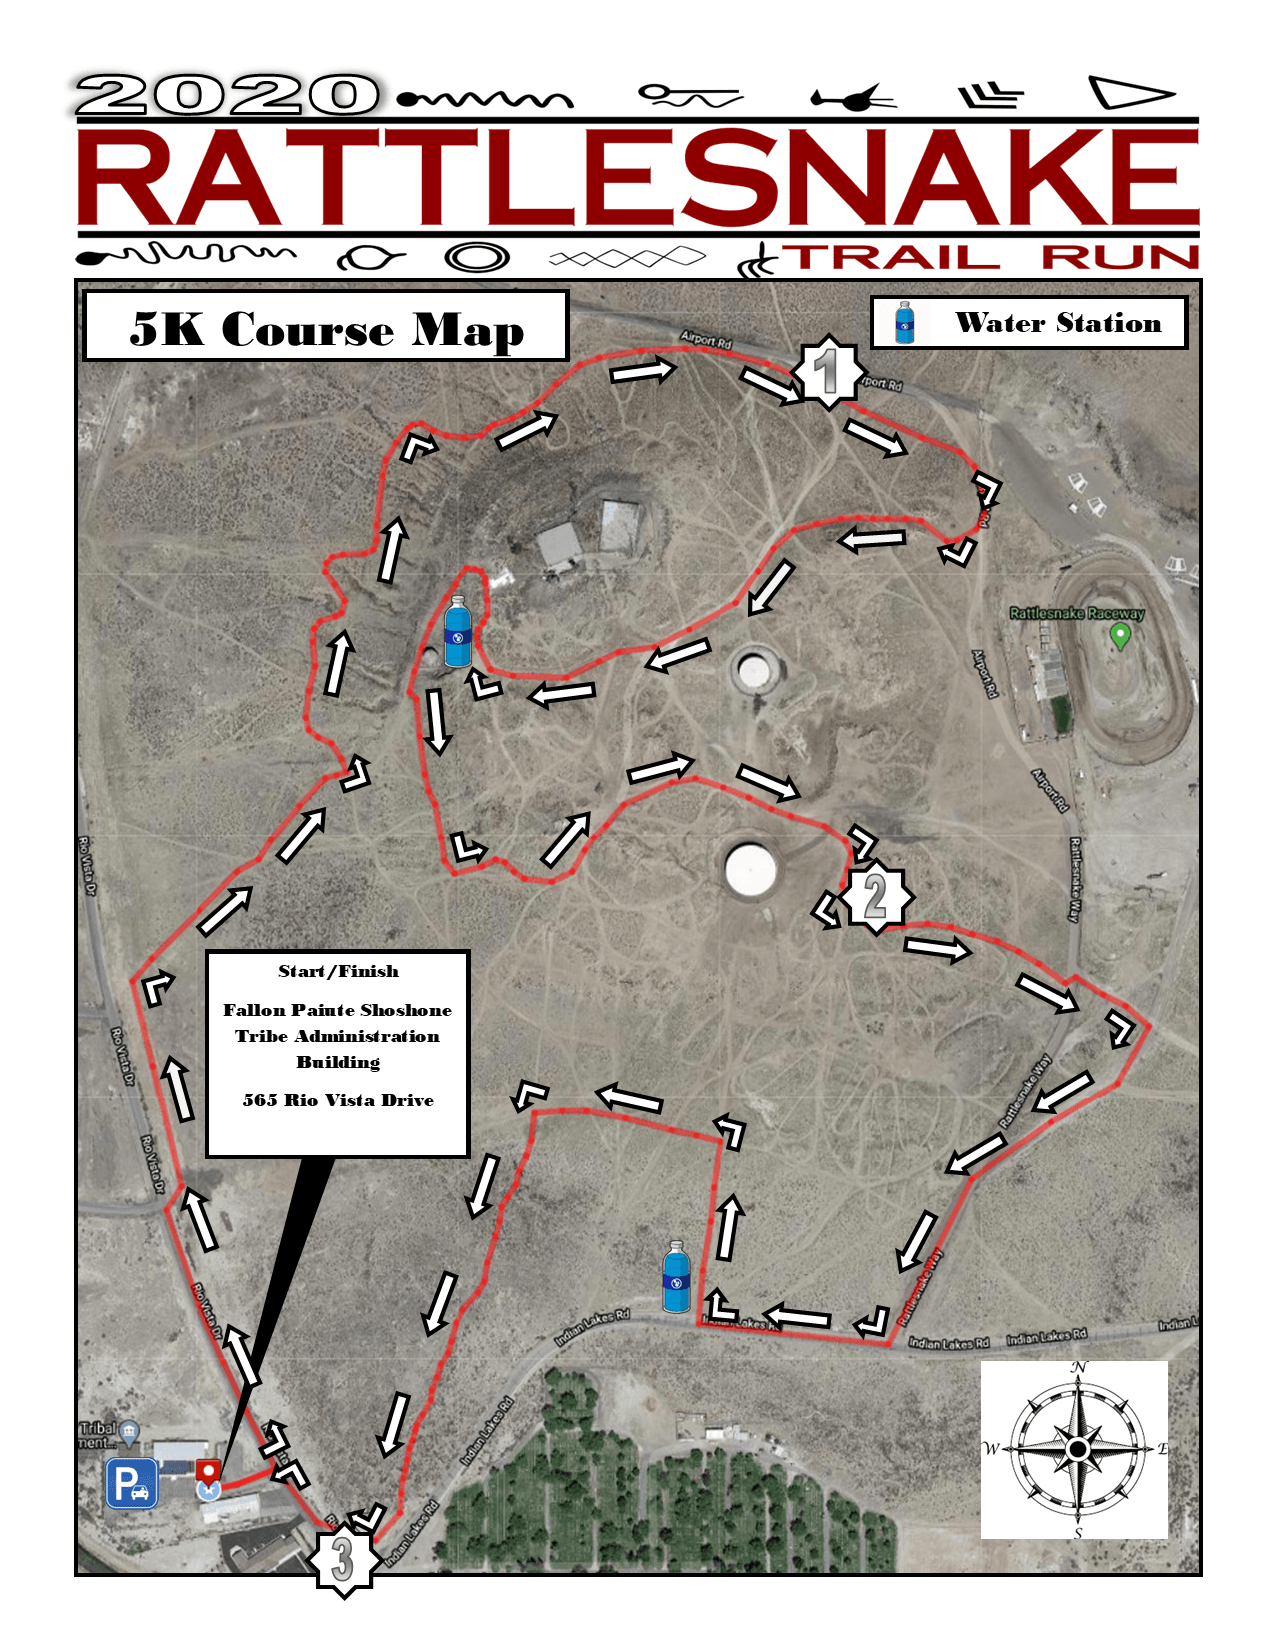 Rattlesnake Trail Run (2020) - 5K Course Map